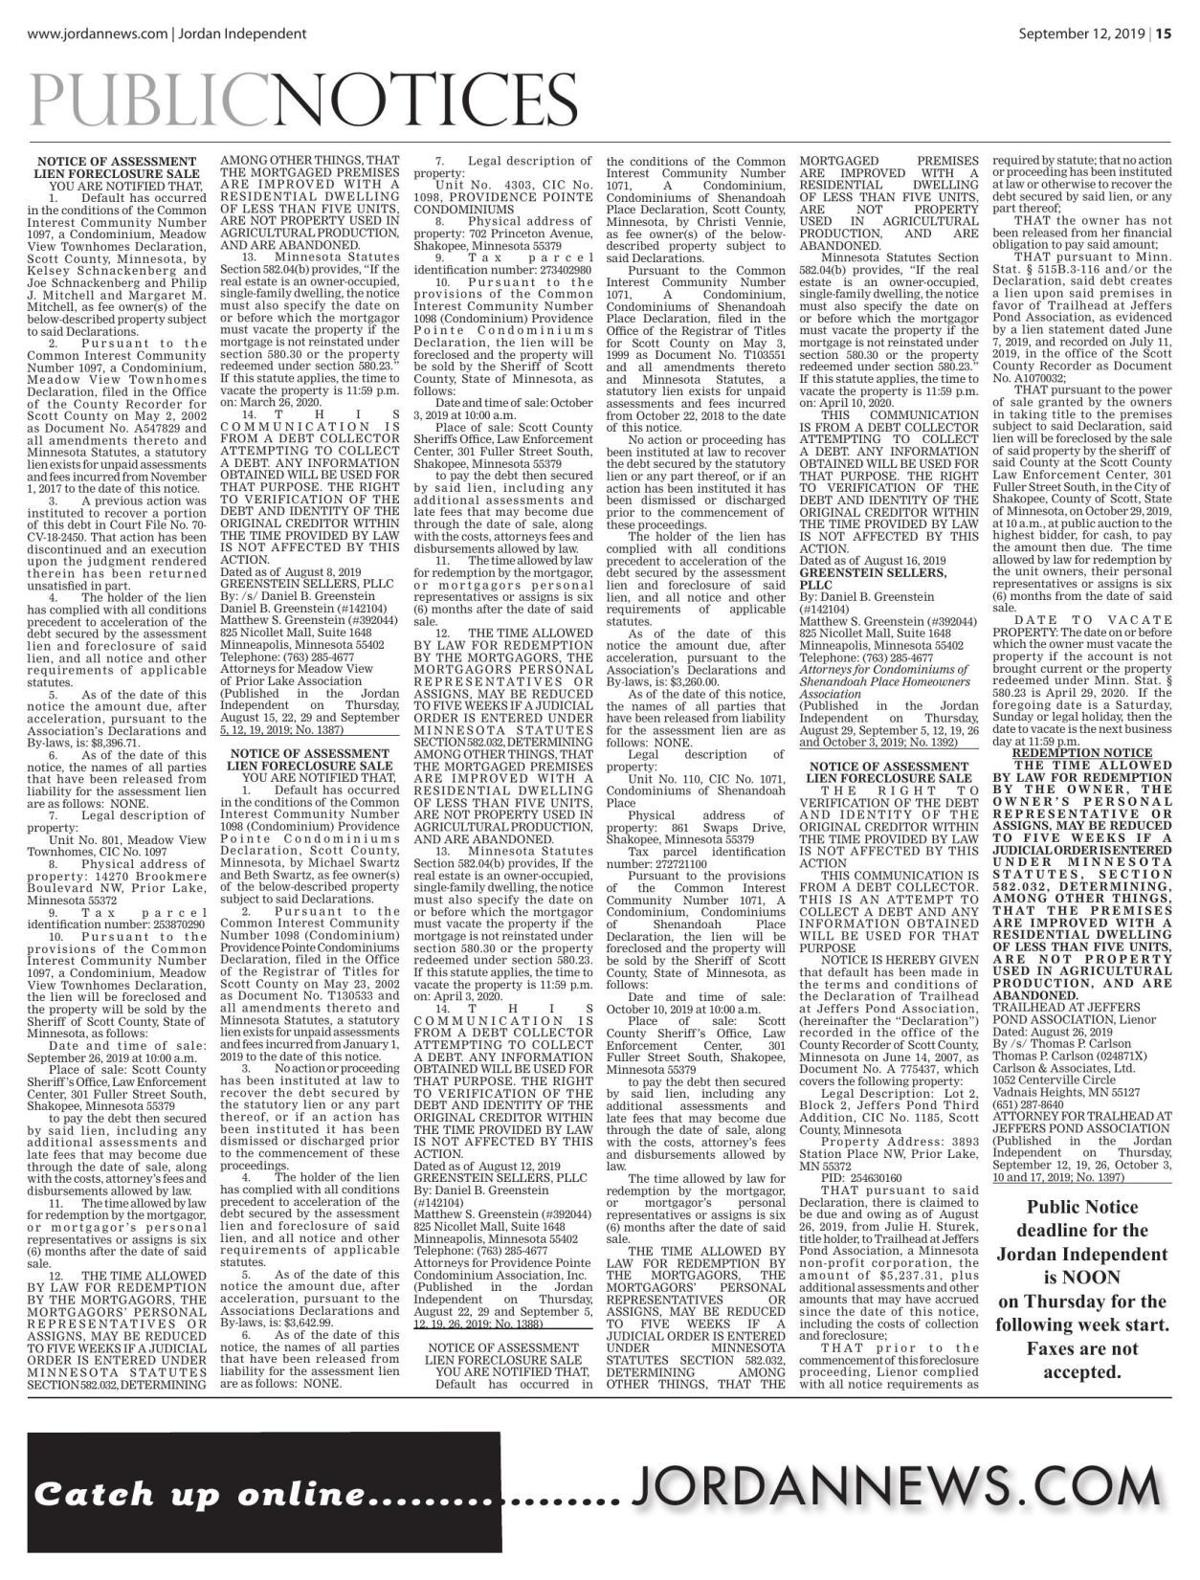 Public notices from the September 12, 2019 Jordan Independent